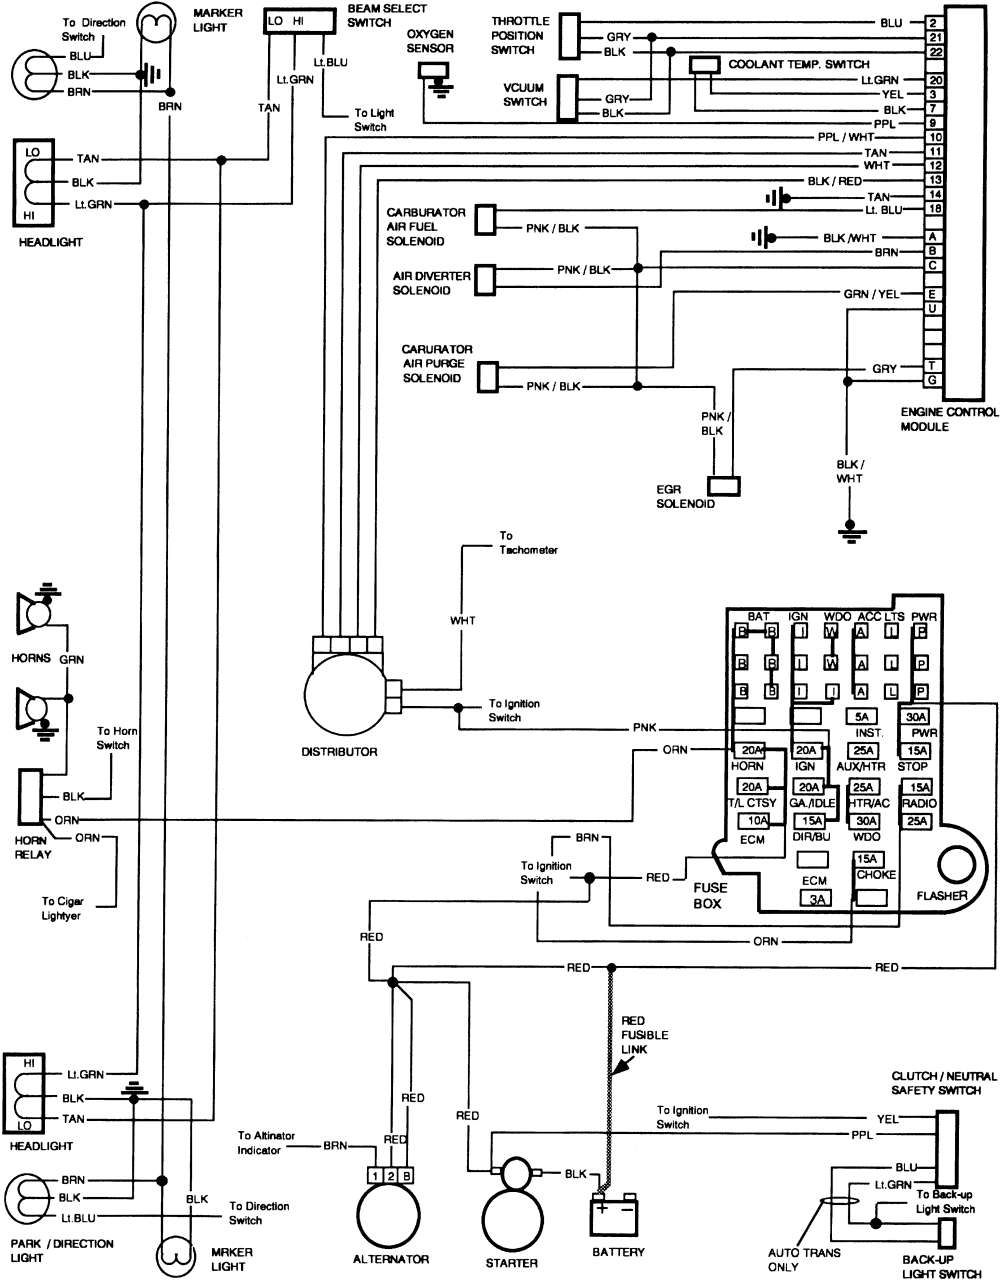 Wiring Diagram Cars Trucks. Wiring Diagram Cars Trucks ...